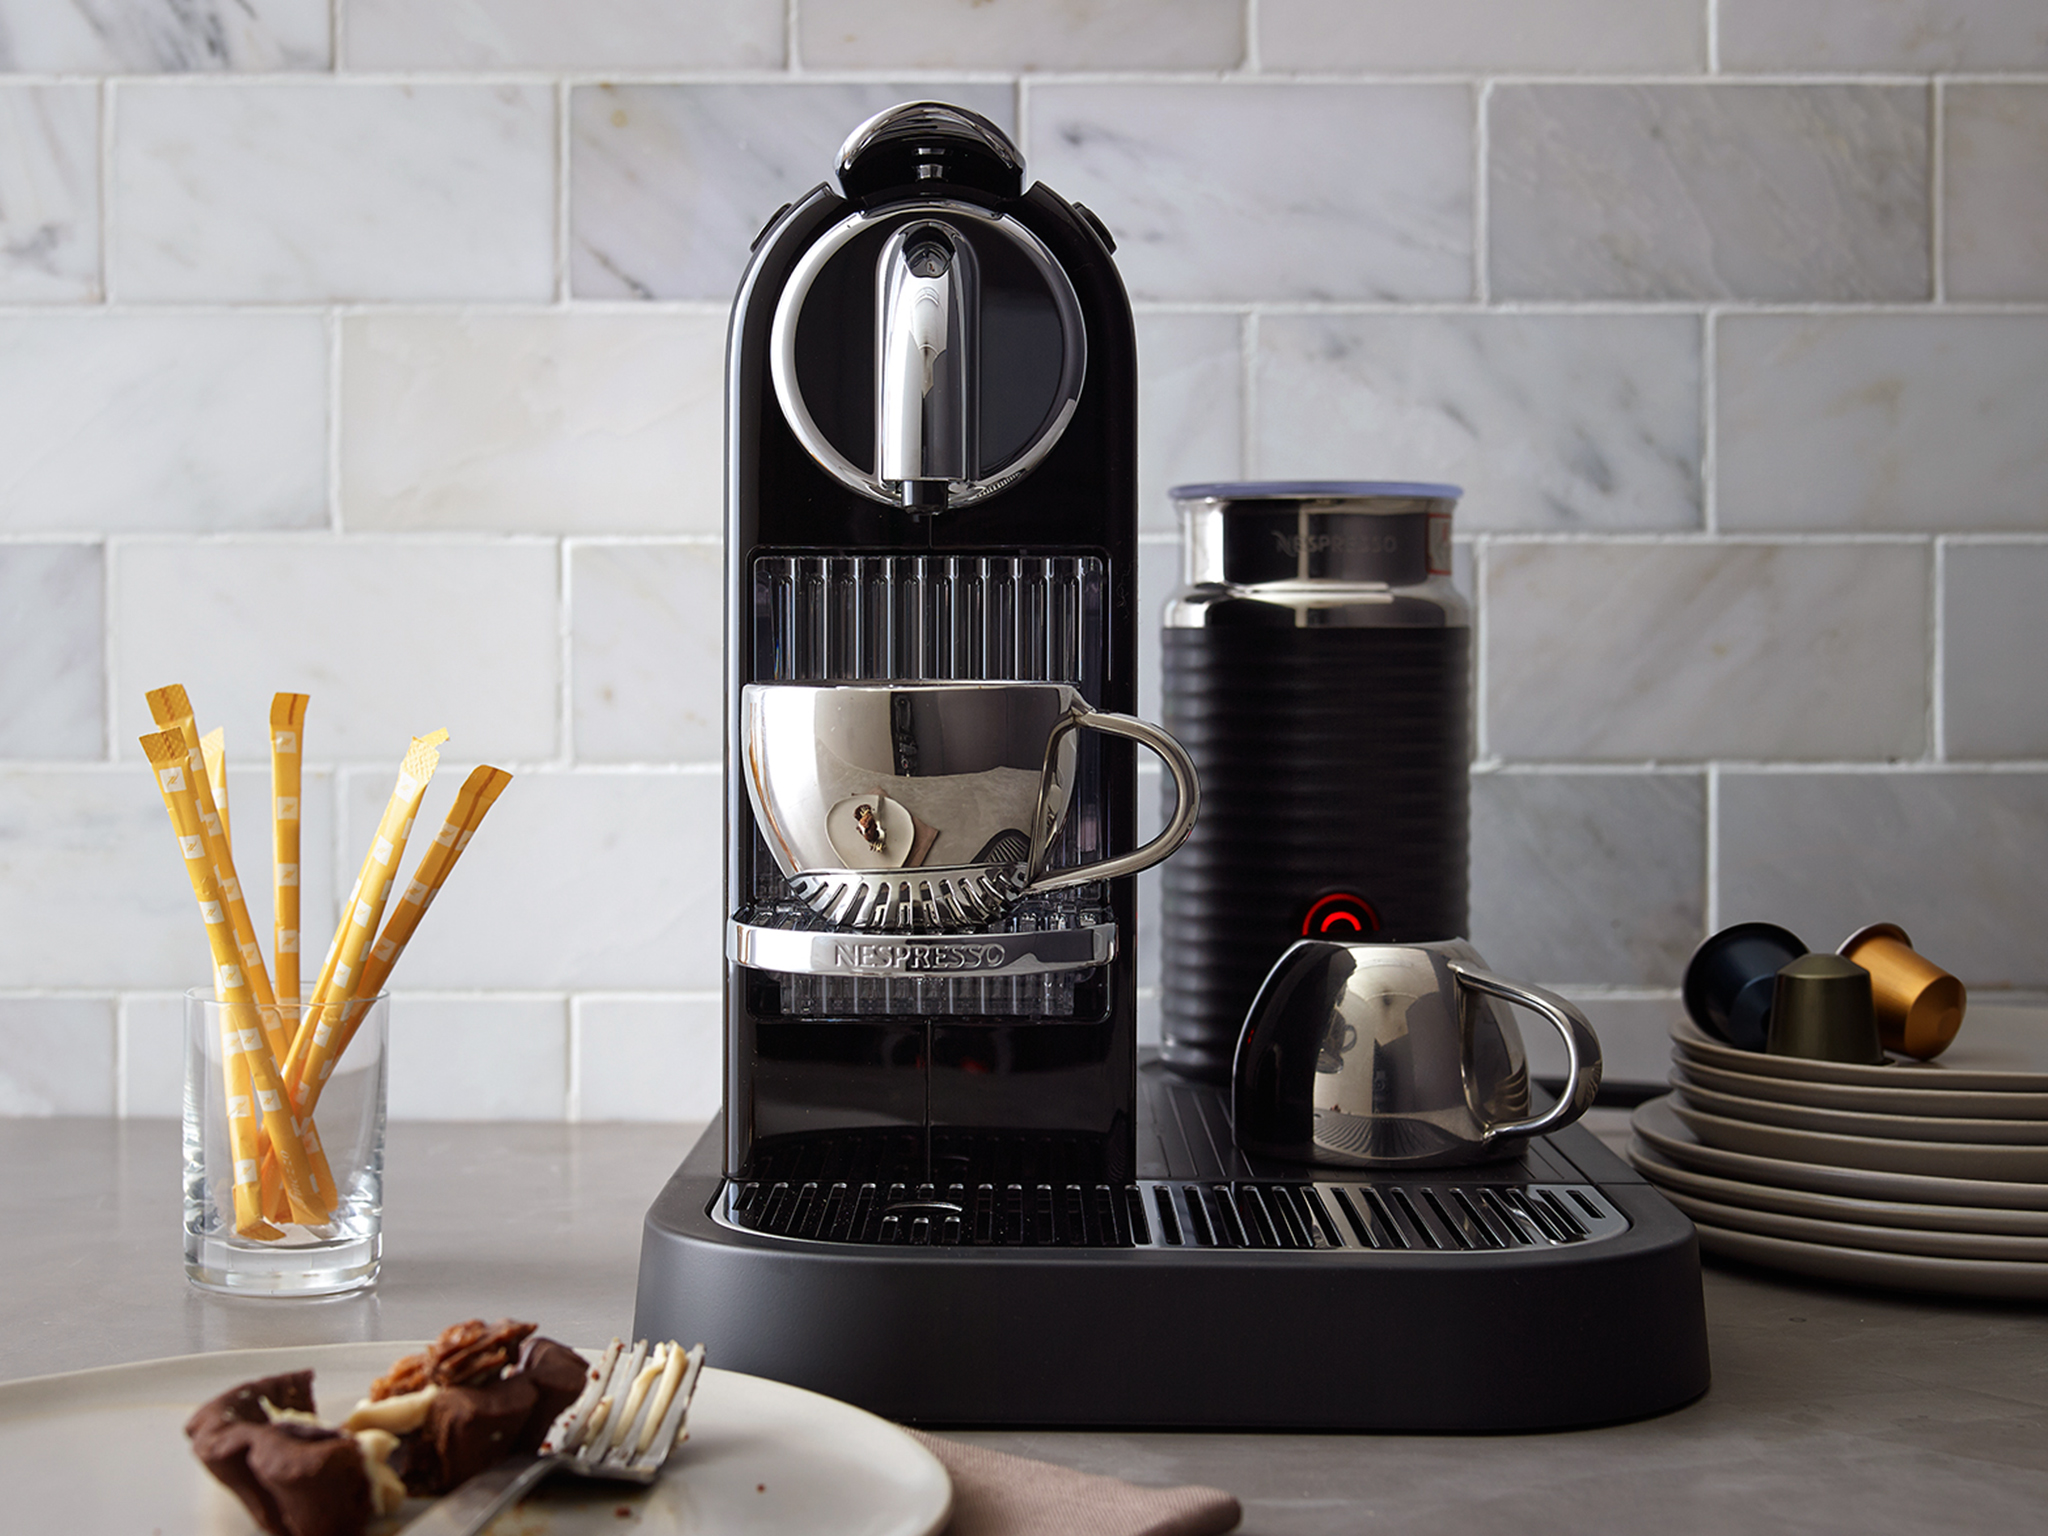 gourg kitchen coffee e6209_59M_NG.jpg